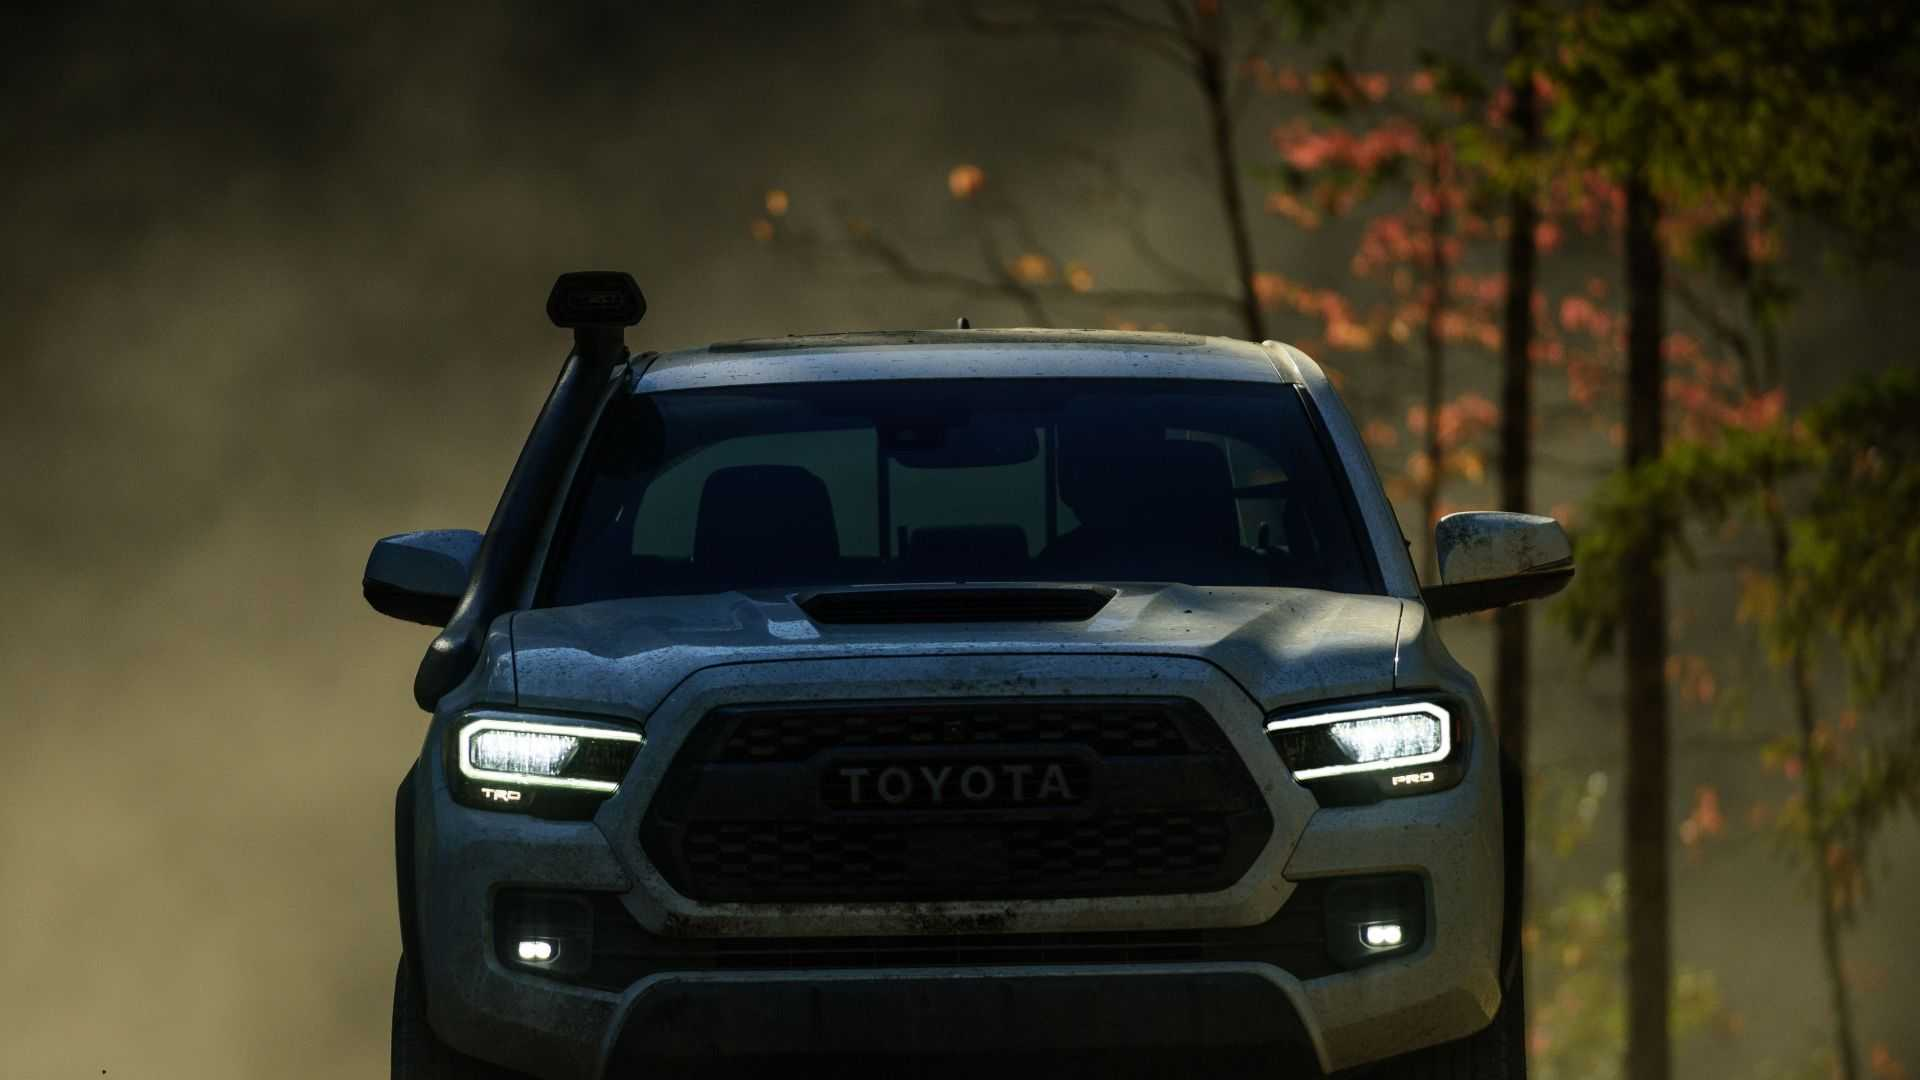 tacoma toyota trd pro road auto chicago hd tundra sequoia revealed front features lineup exterior autoevolution led wheels comments terrain